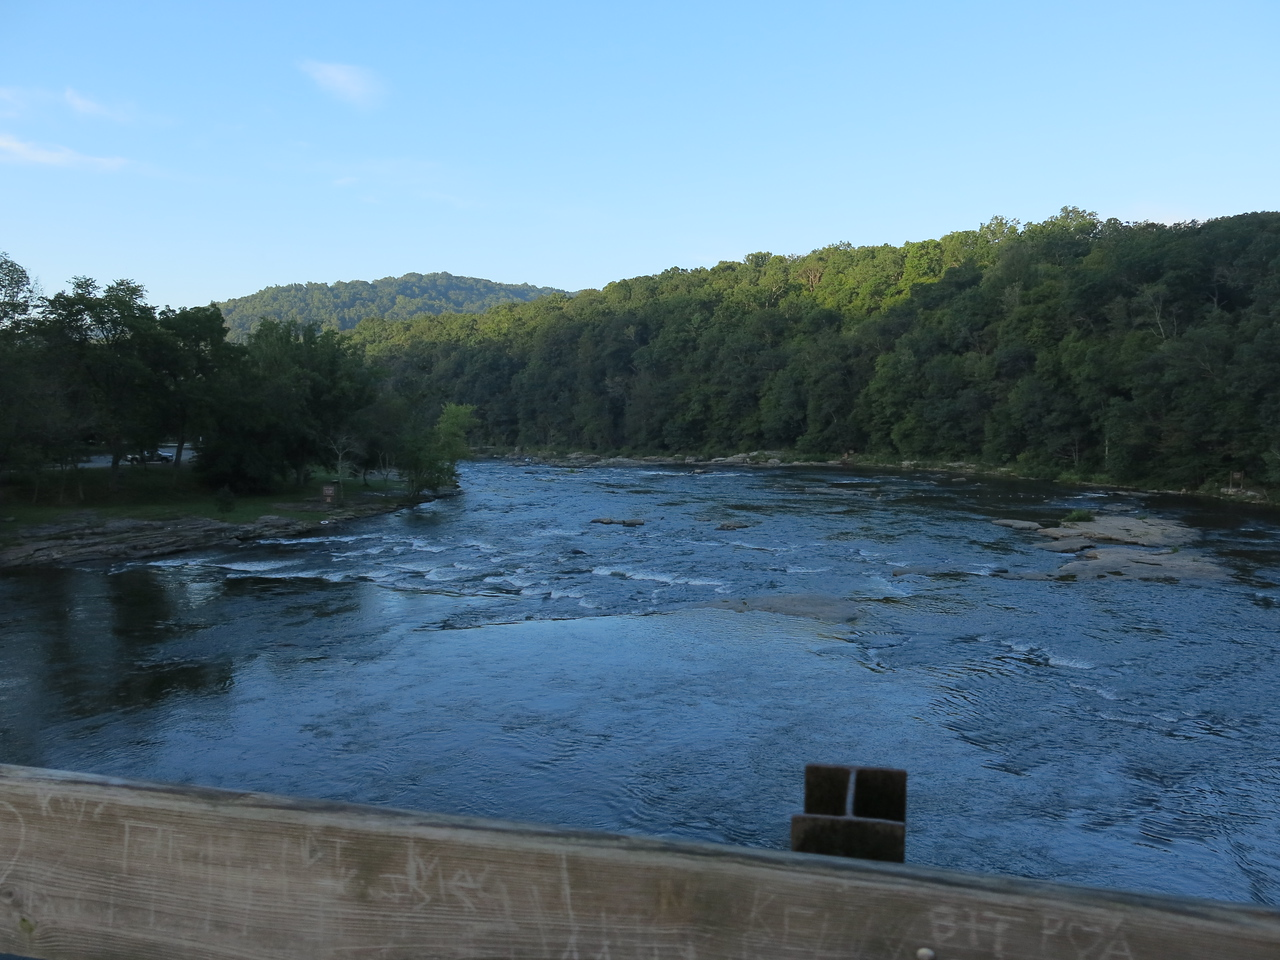 Another downstream view from Low Bridge